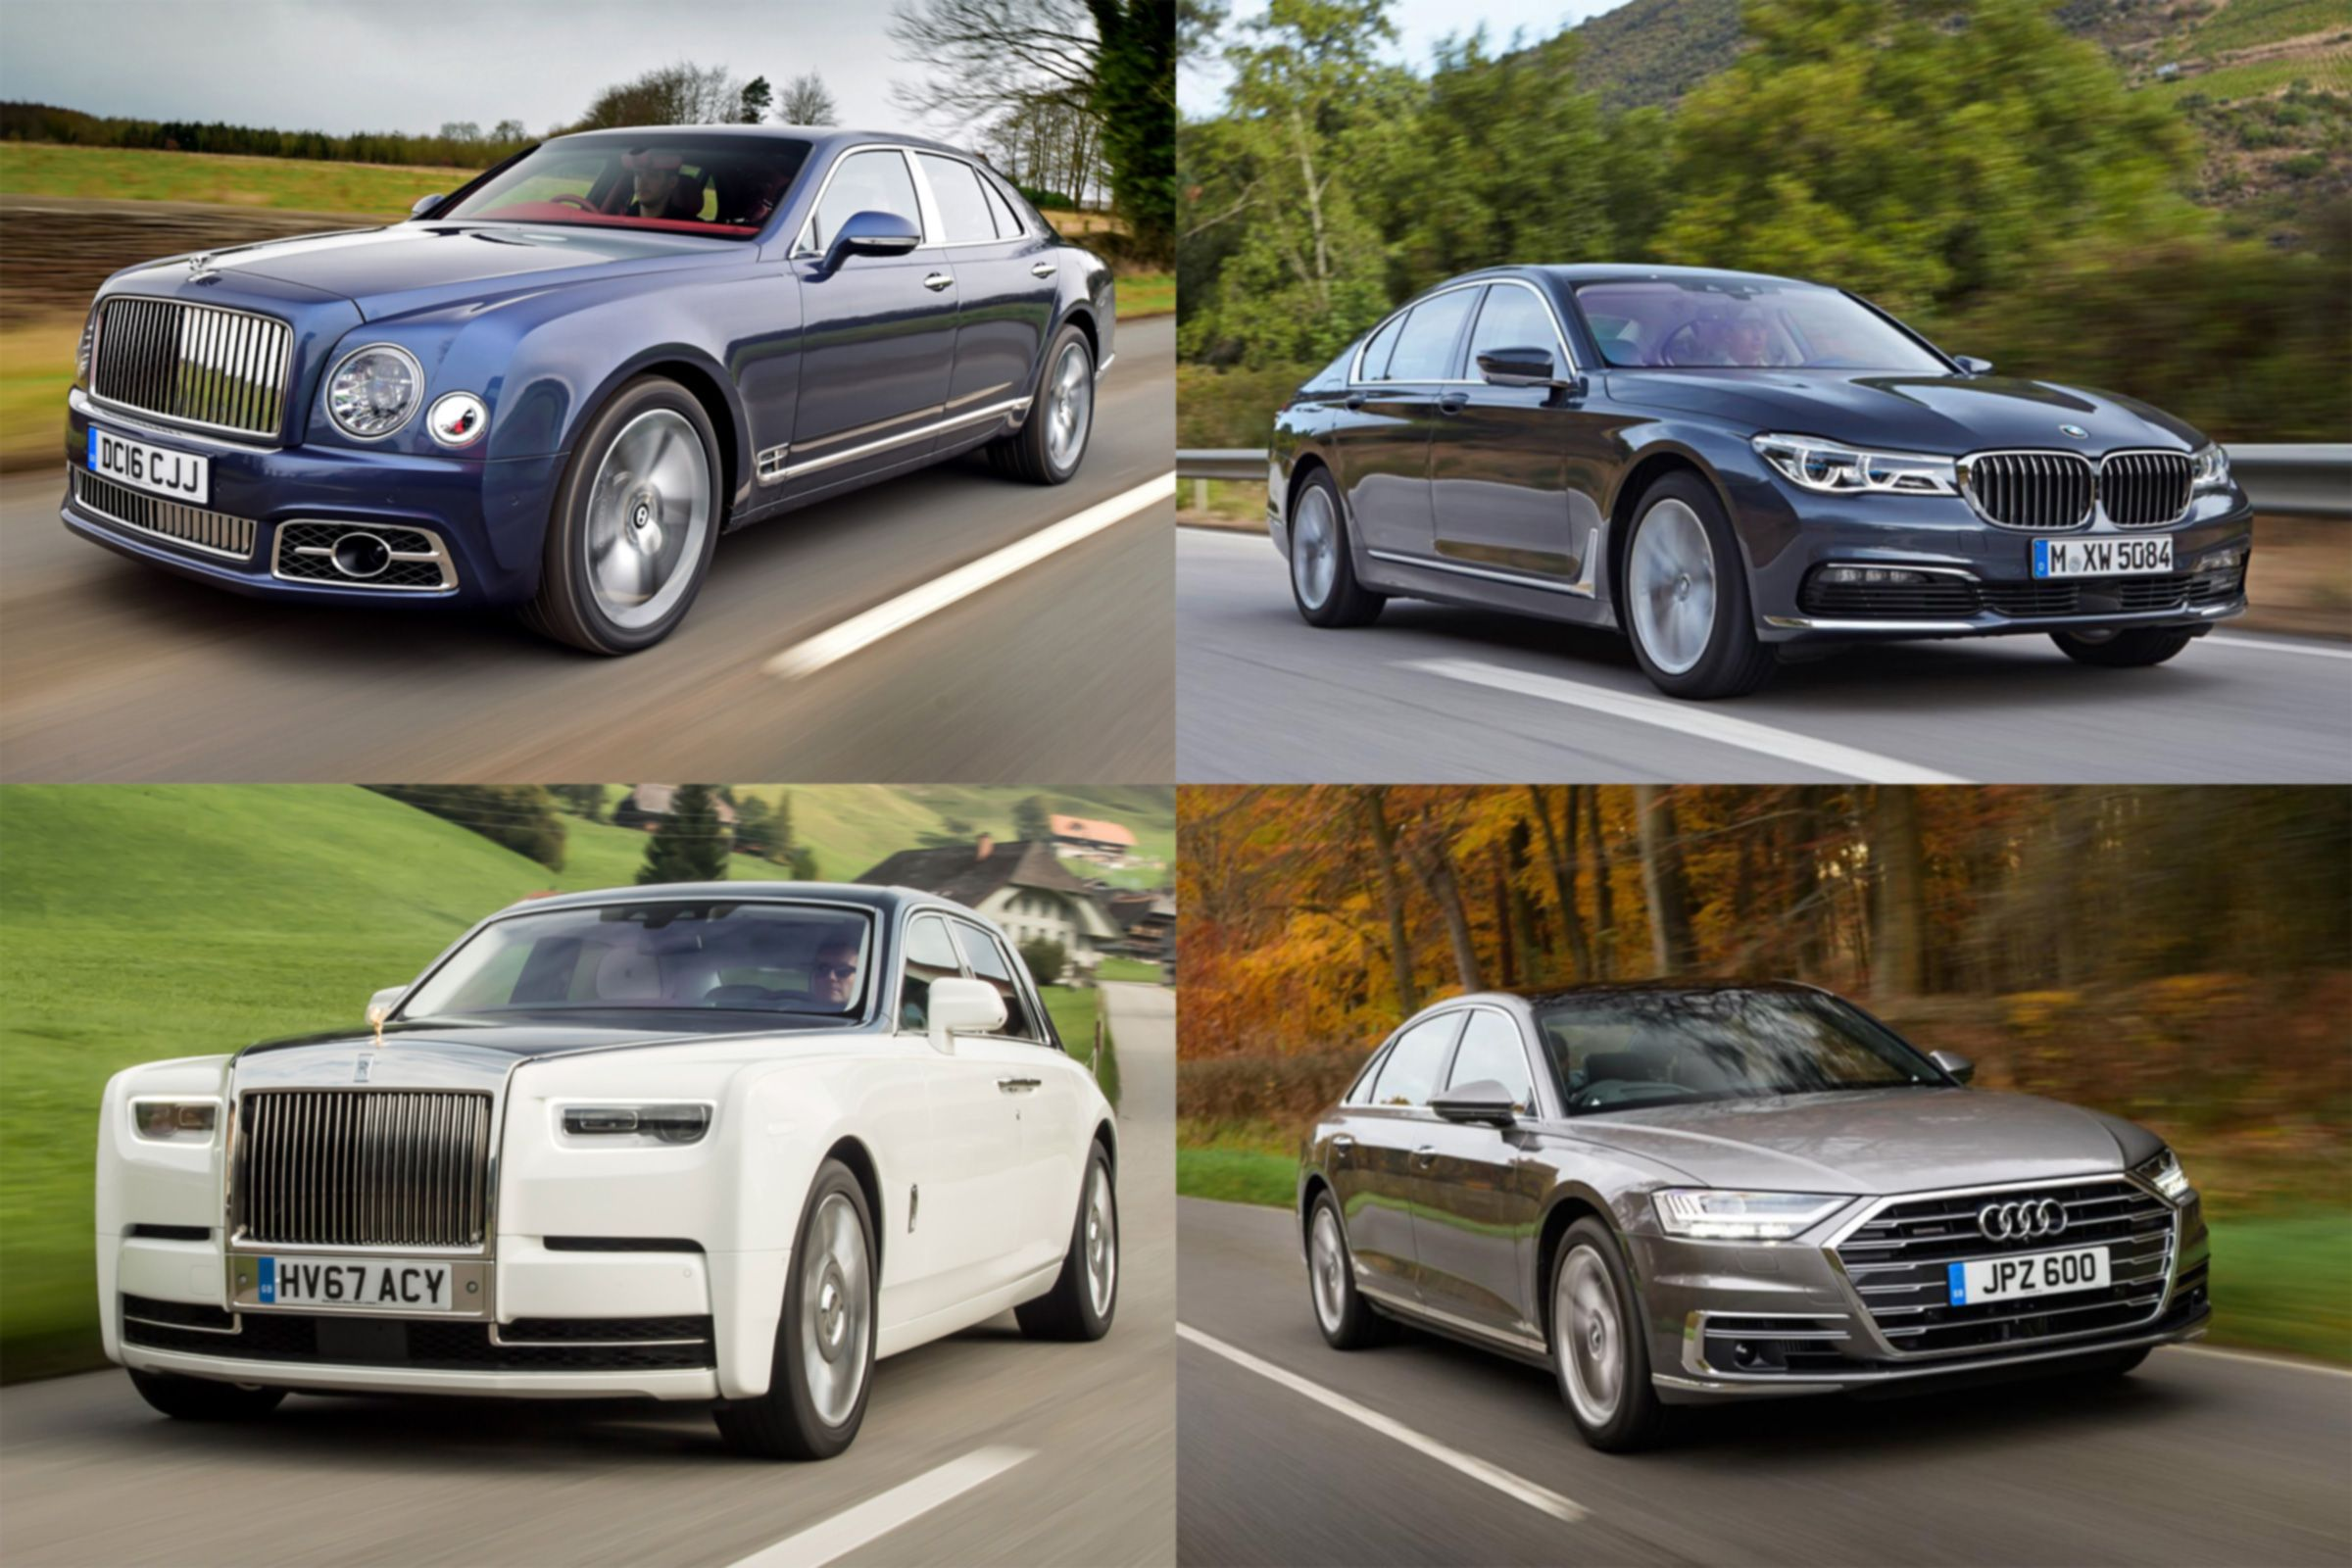 Top 10 Luxury Cars To Attract Women Best Luxury Cars Sports Cars Luxury Car